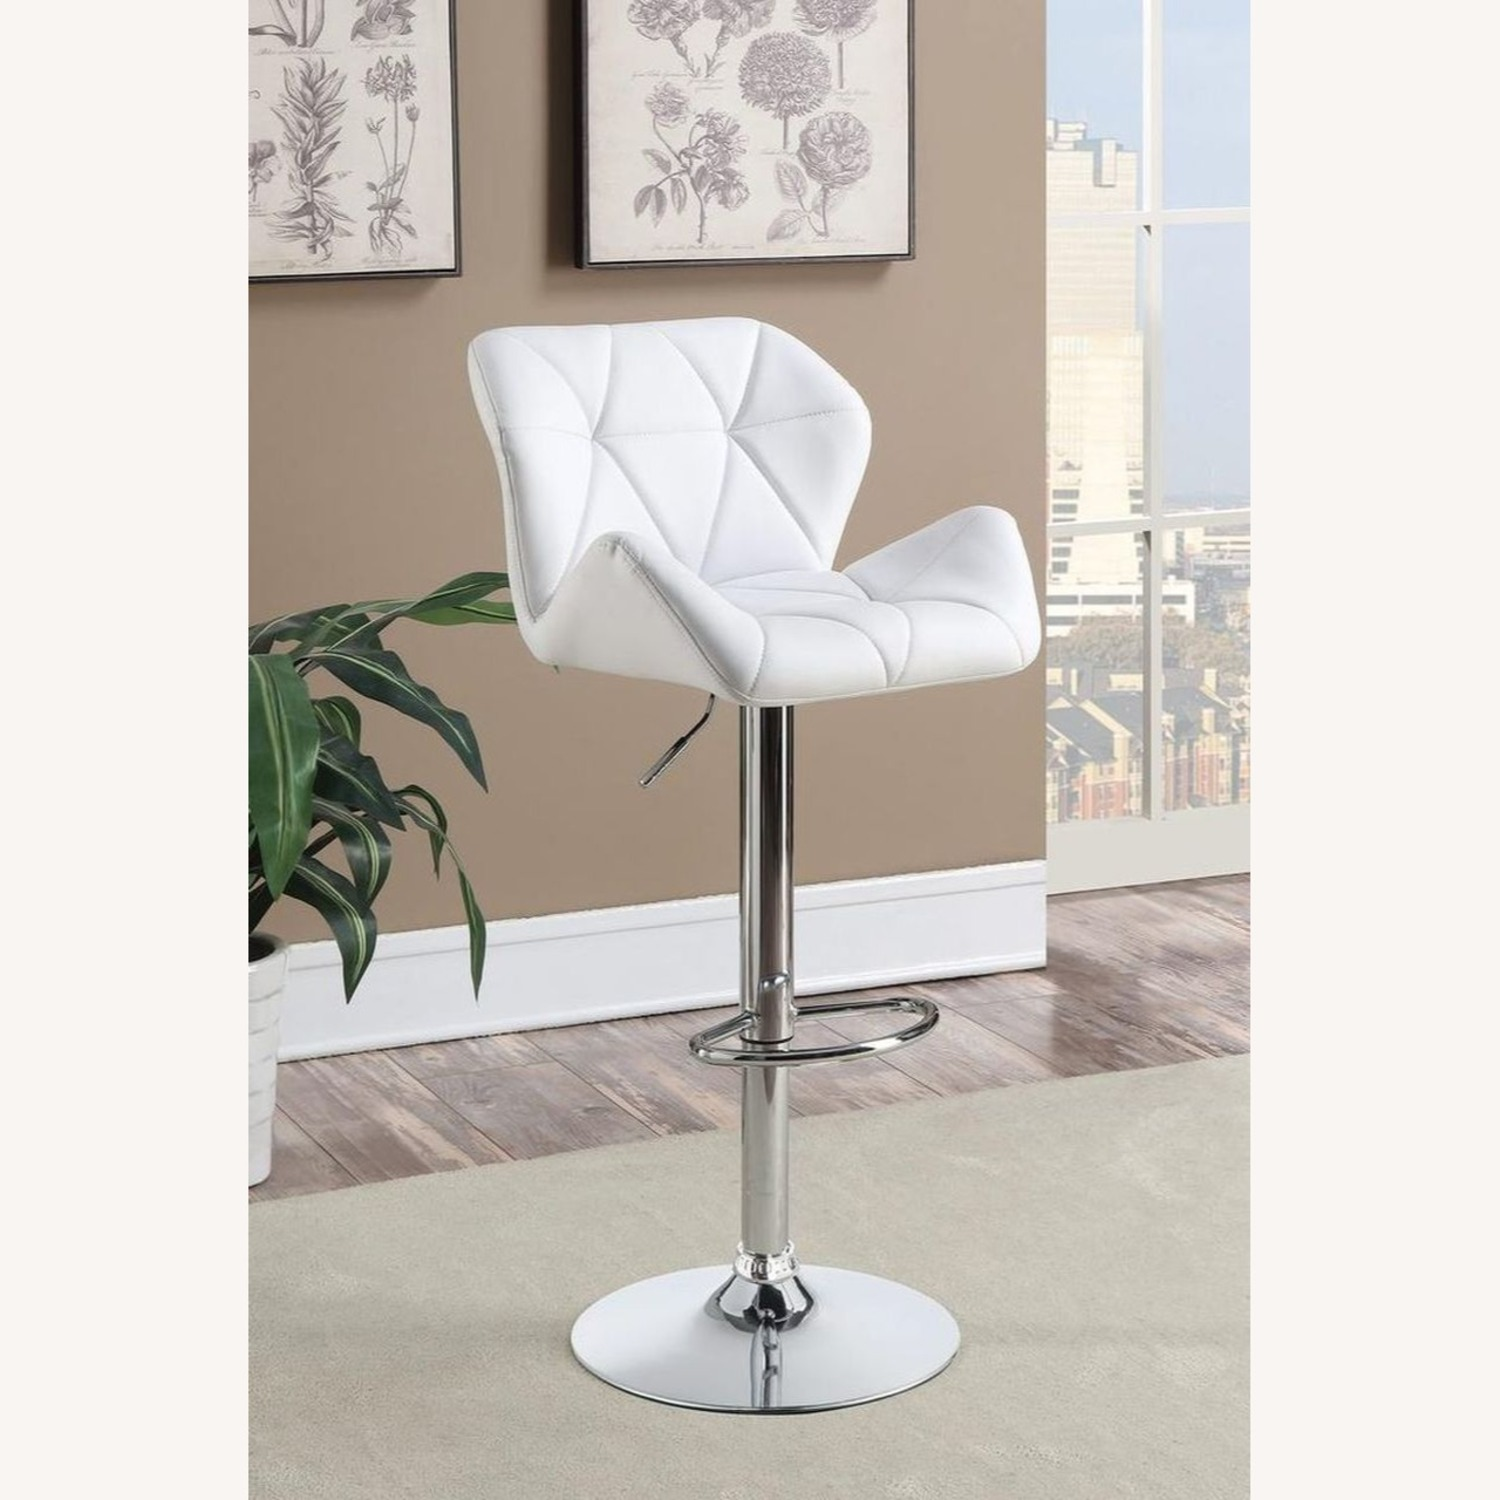 Adjustable Bar Stool In Tufted White Leatherette - image-3